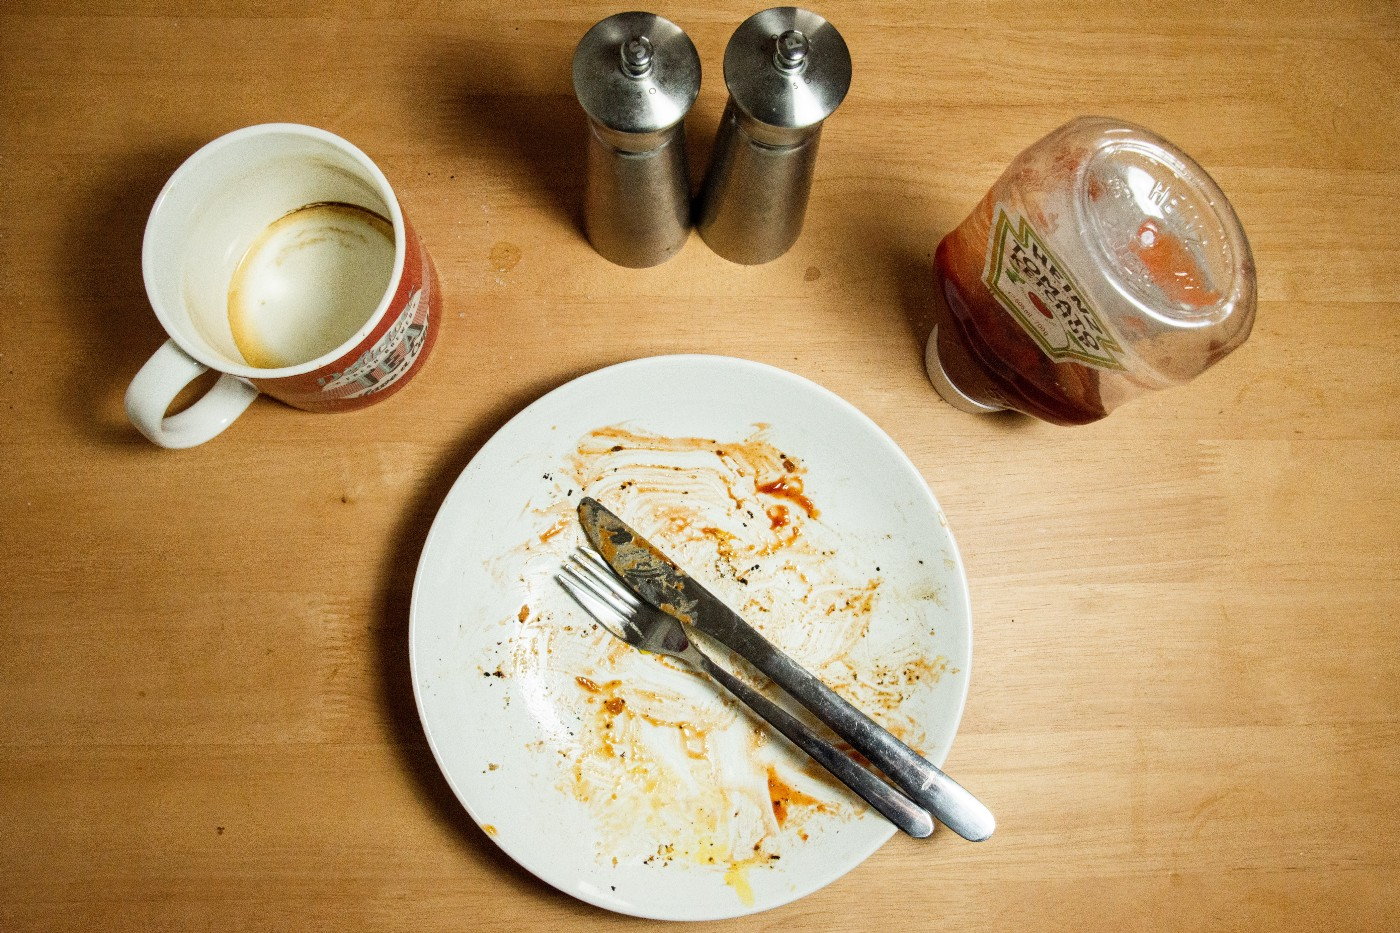 dirty plate and empty cup on table top